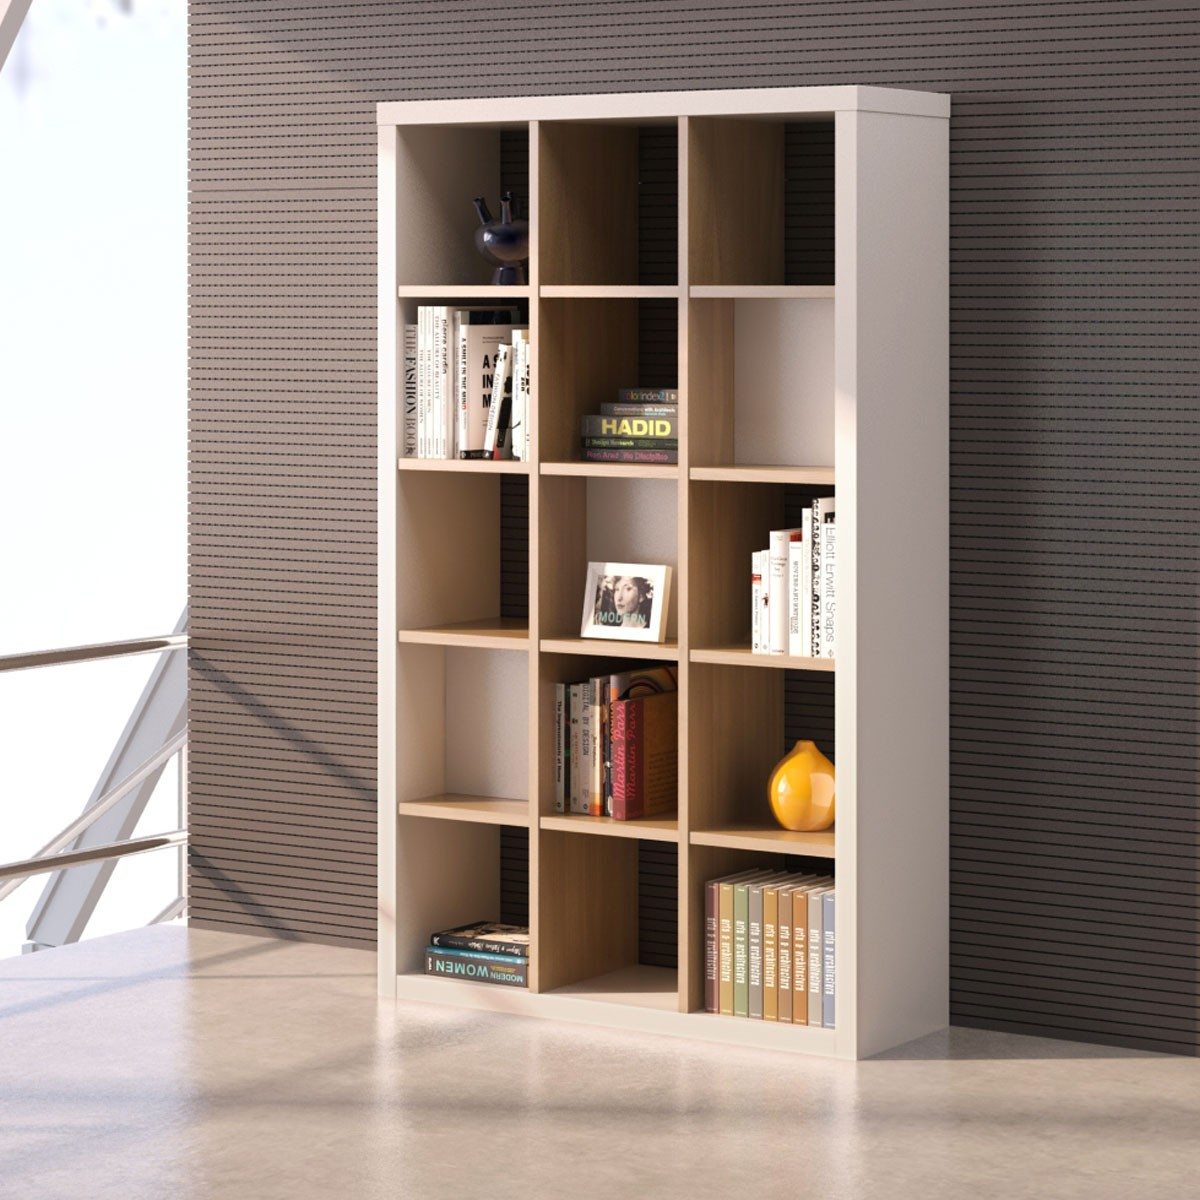 """Shelving Unit 76.8""""H x 47.2""""W x 15.7""""D in Oak and White (CG53)"""